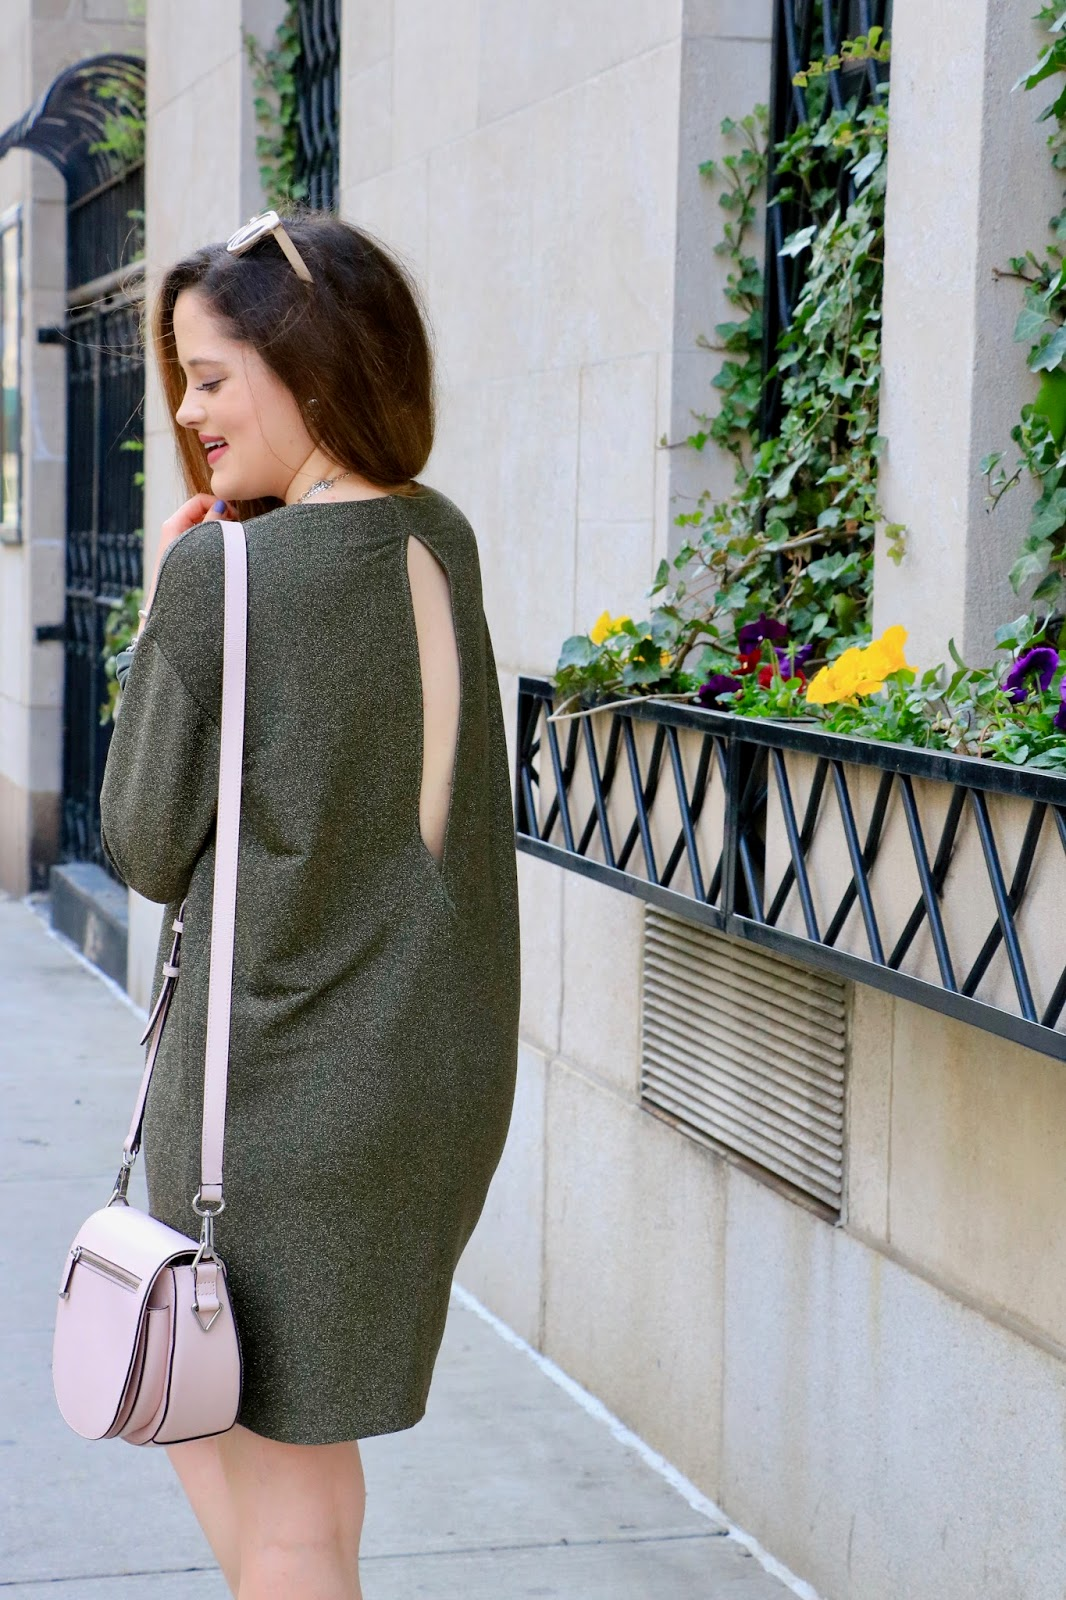 Fashion blogger Kathleen Harper wearing a green open-back dress